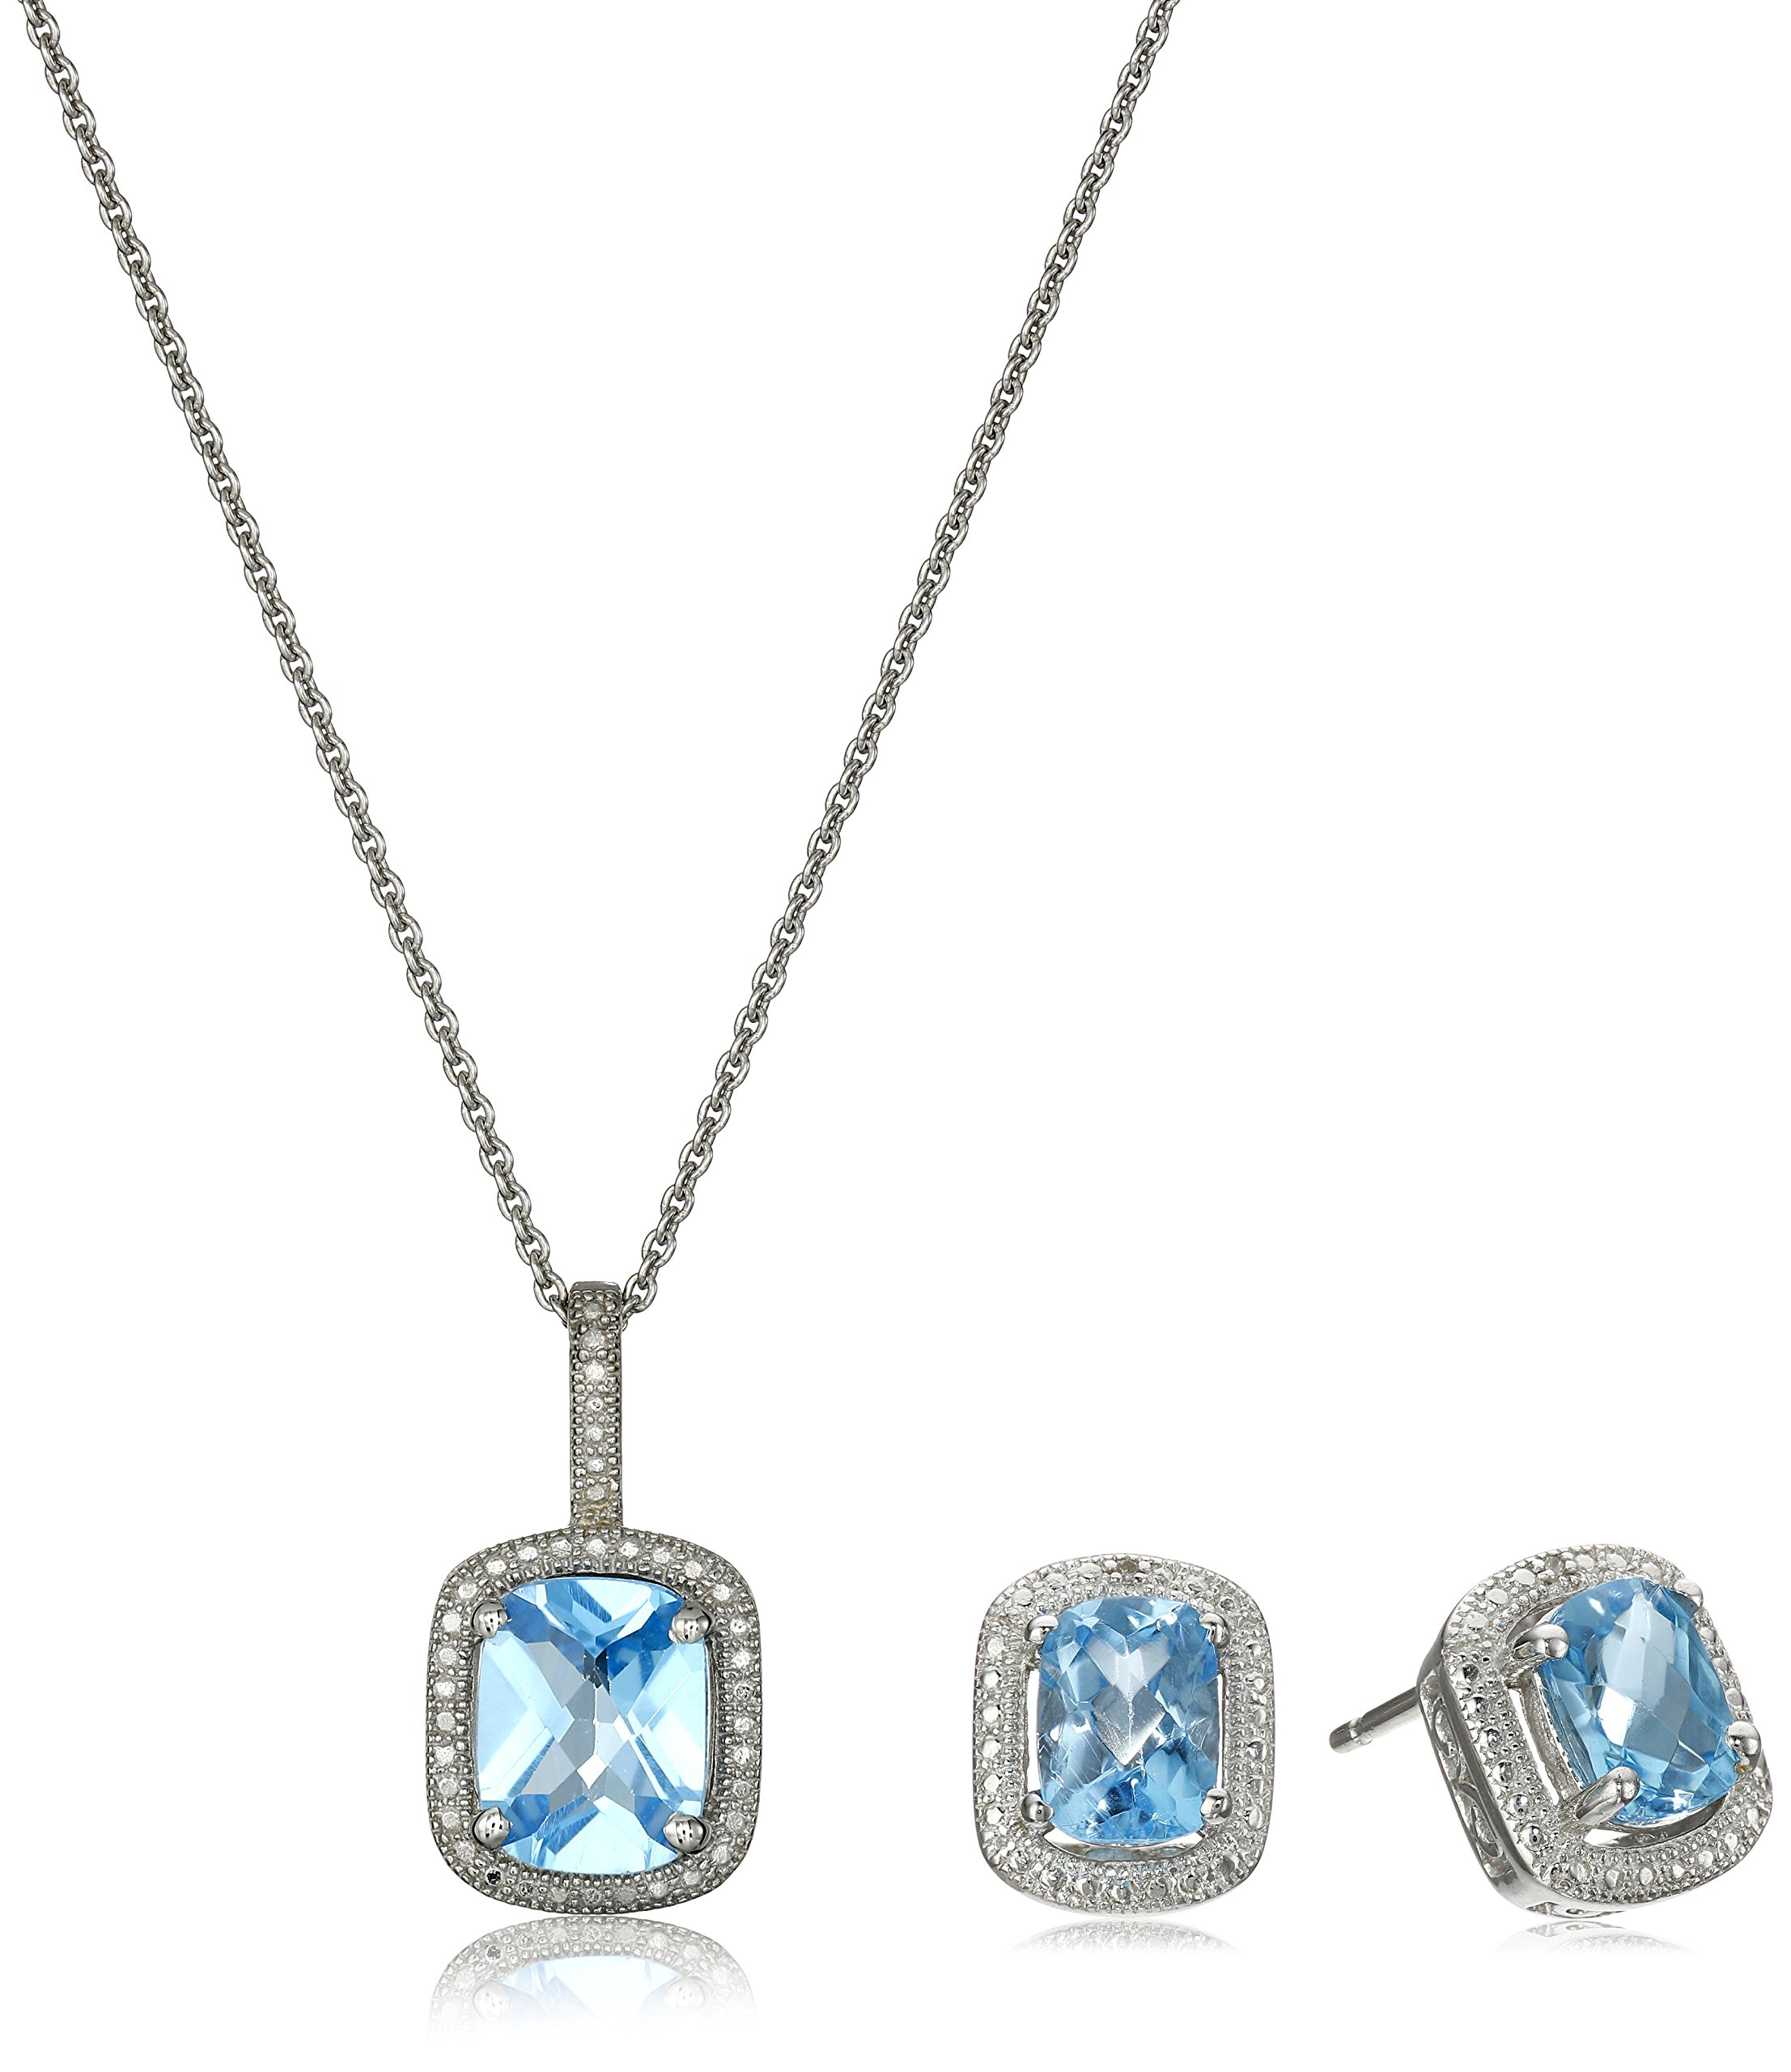 Sterling Silver Blue Topaz Cushion with Diamond Pendant Necklace and Earrings Box Set, 18''